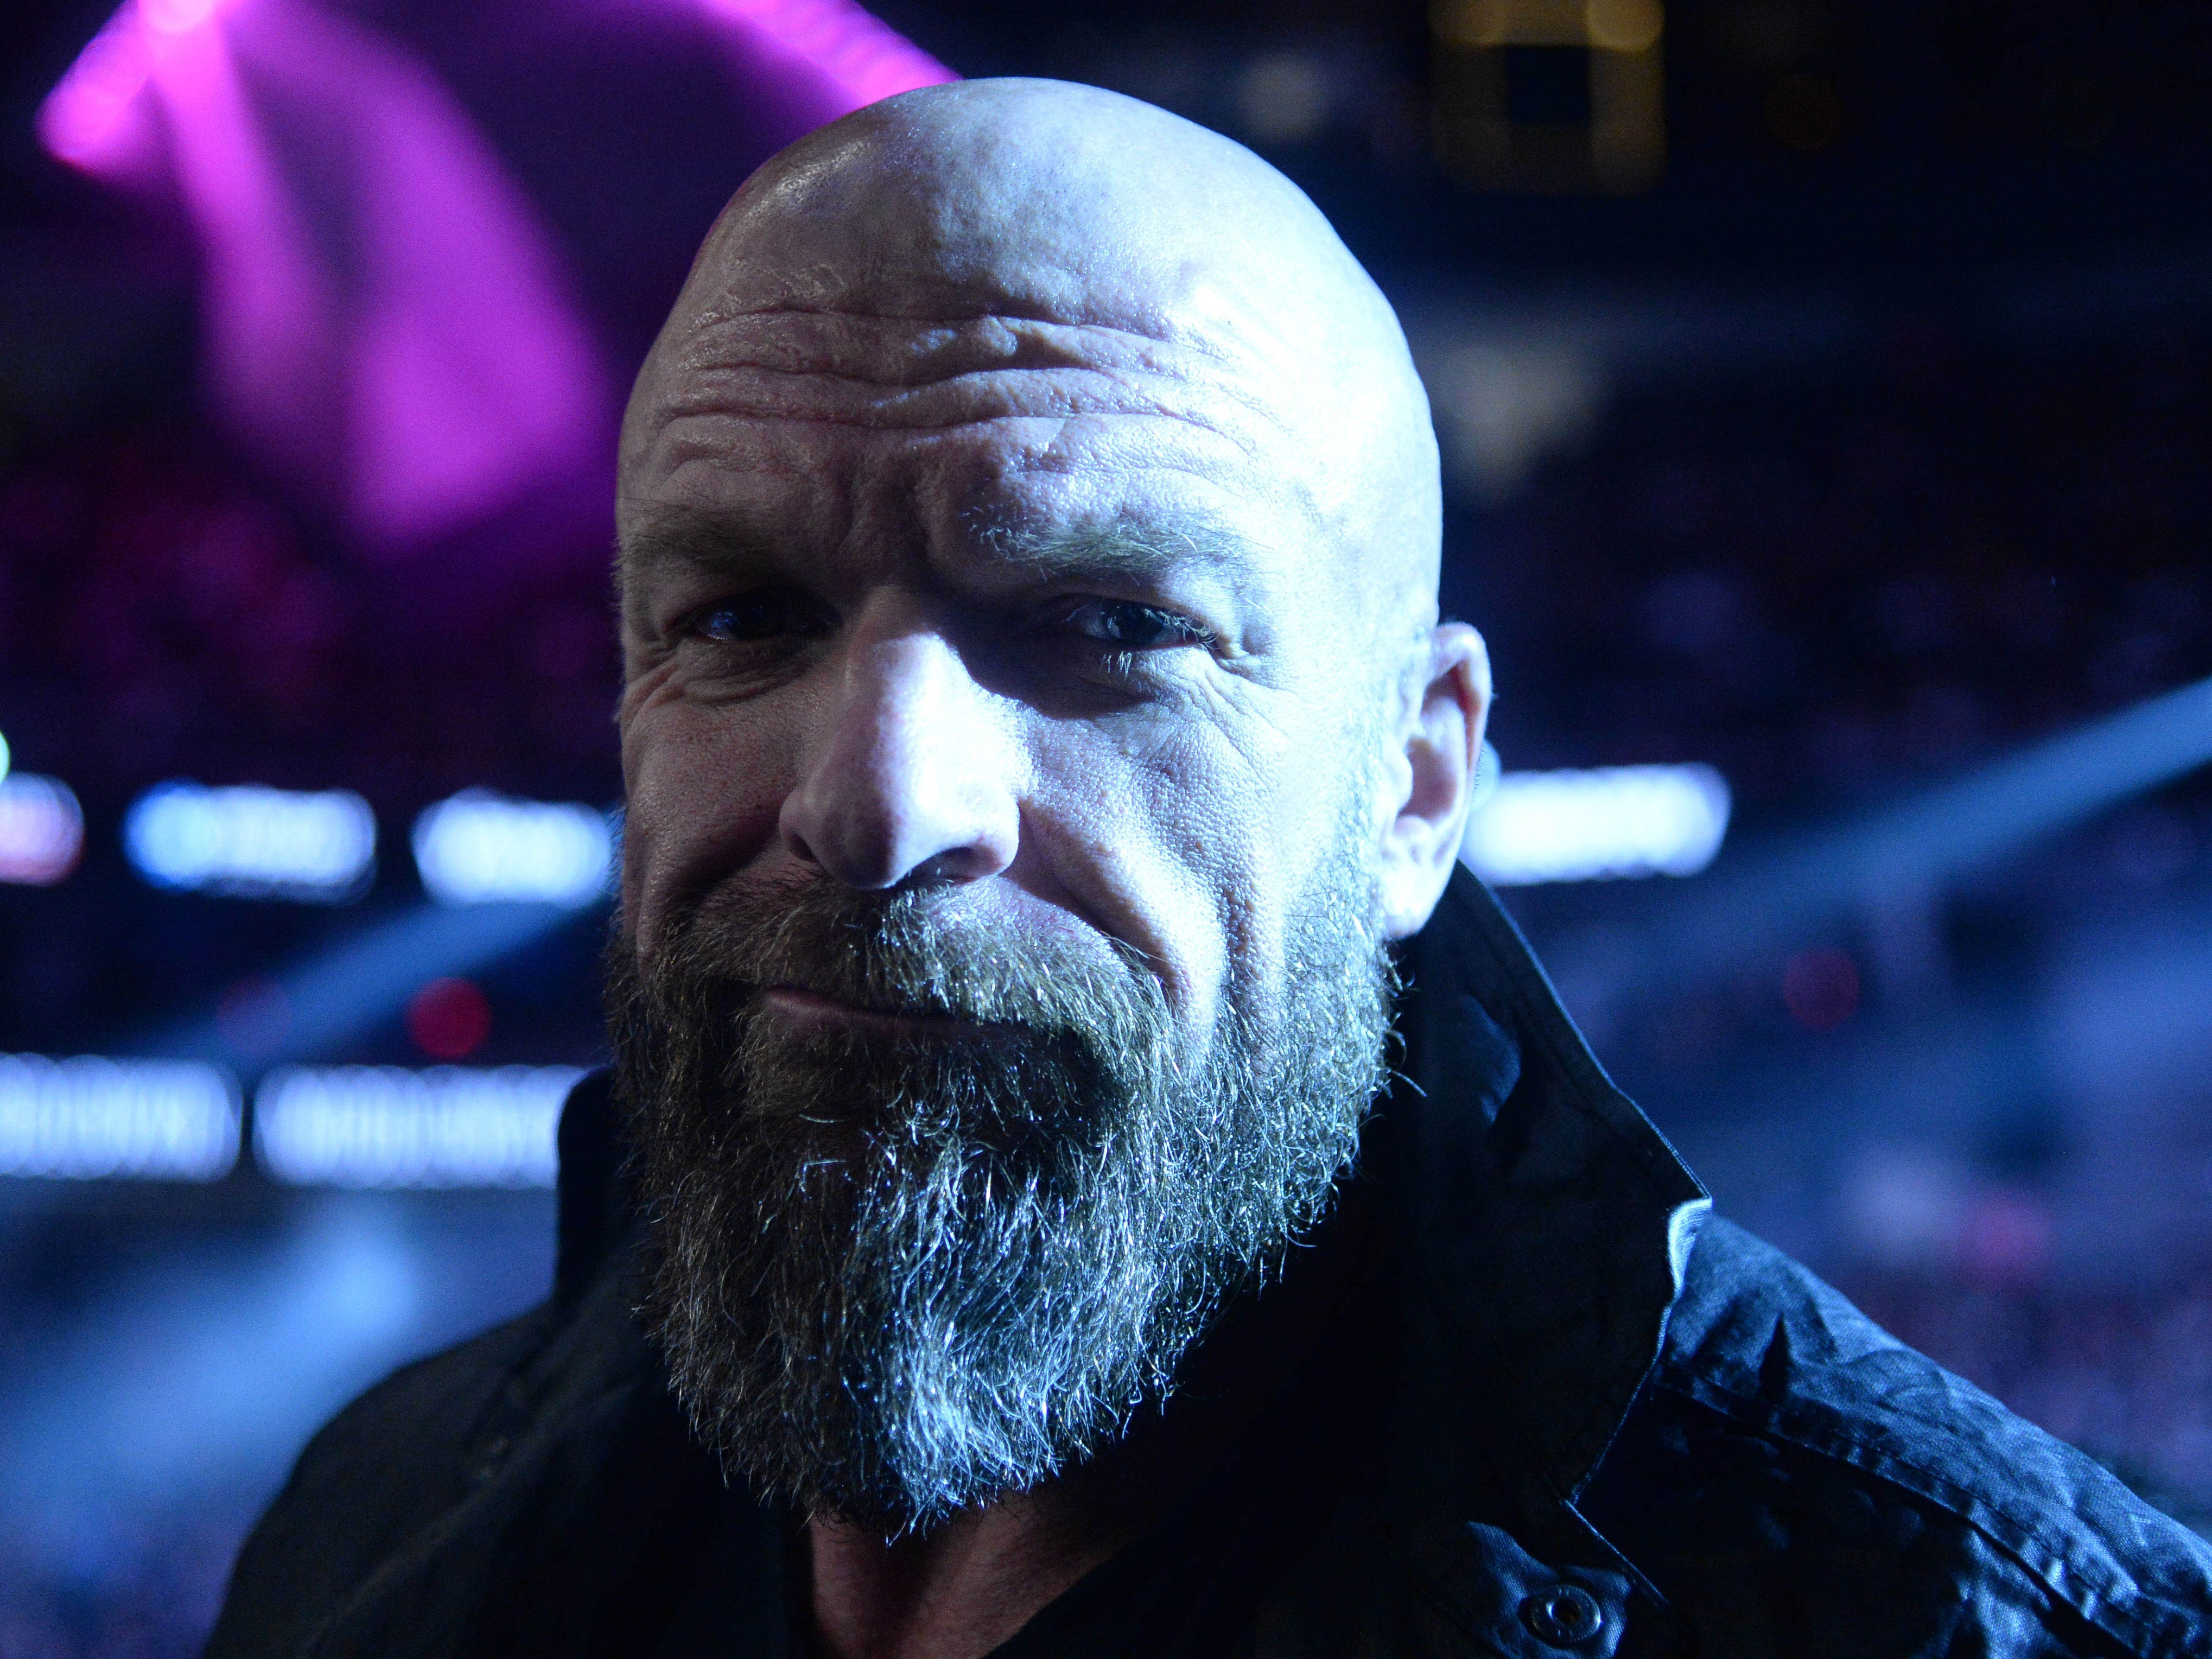 Triple H, wrestling legend and COO of the WWE, before the fight.